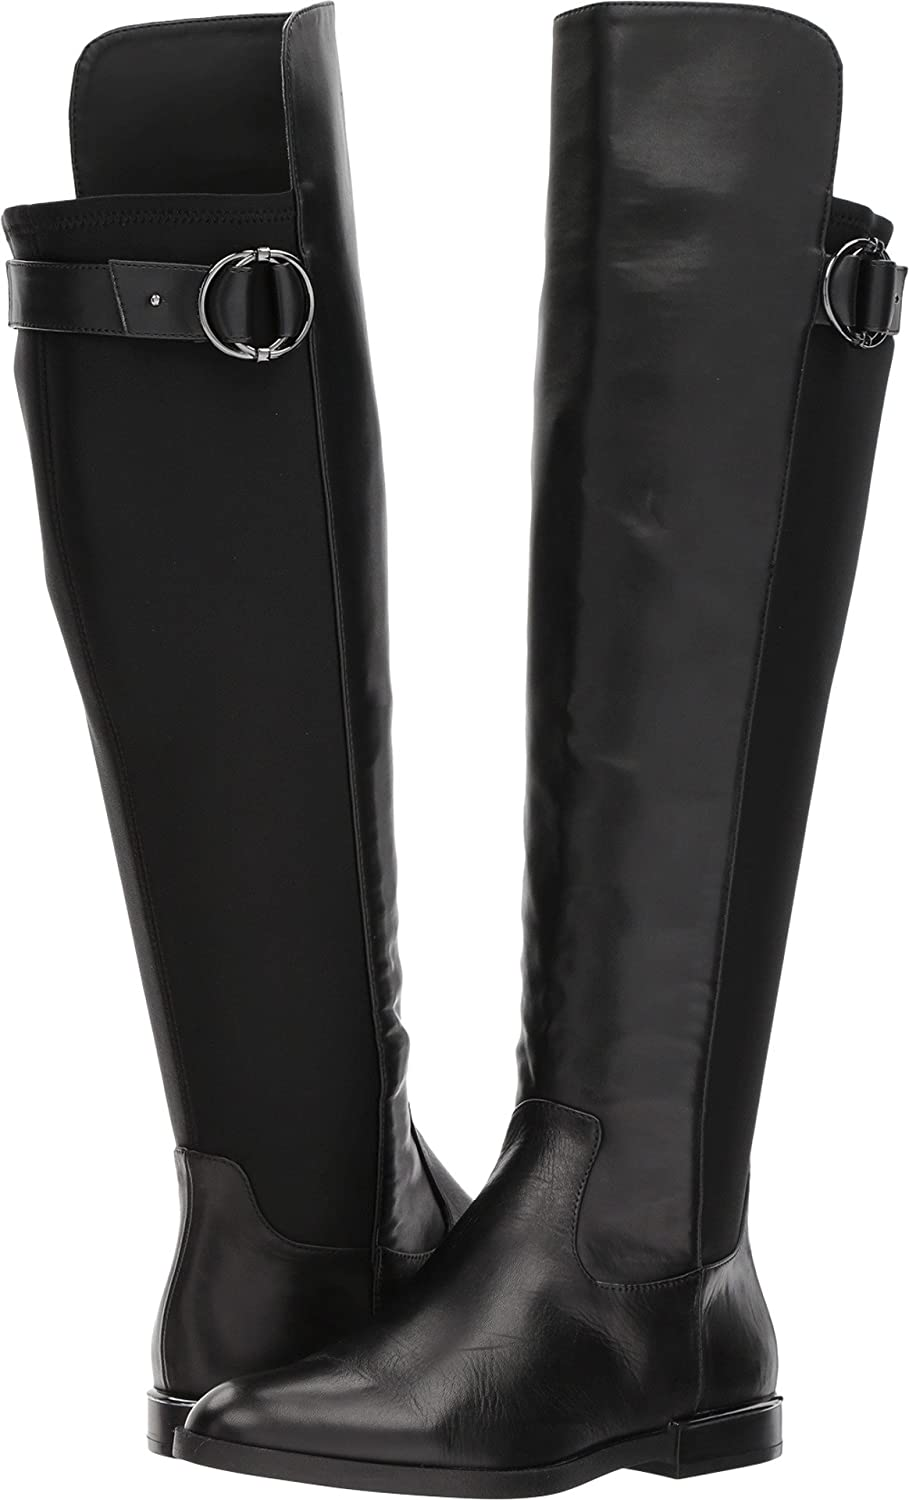 Calvin Klein Womens Priscila B075FWYTPL 7 B(M) US|Black/Gunmetal Cow Silk/Neoprene Wide Calf